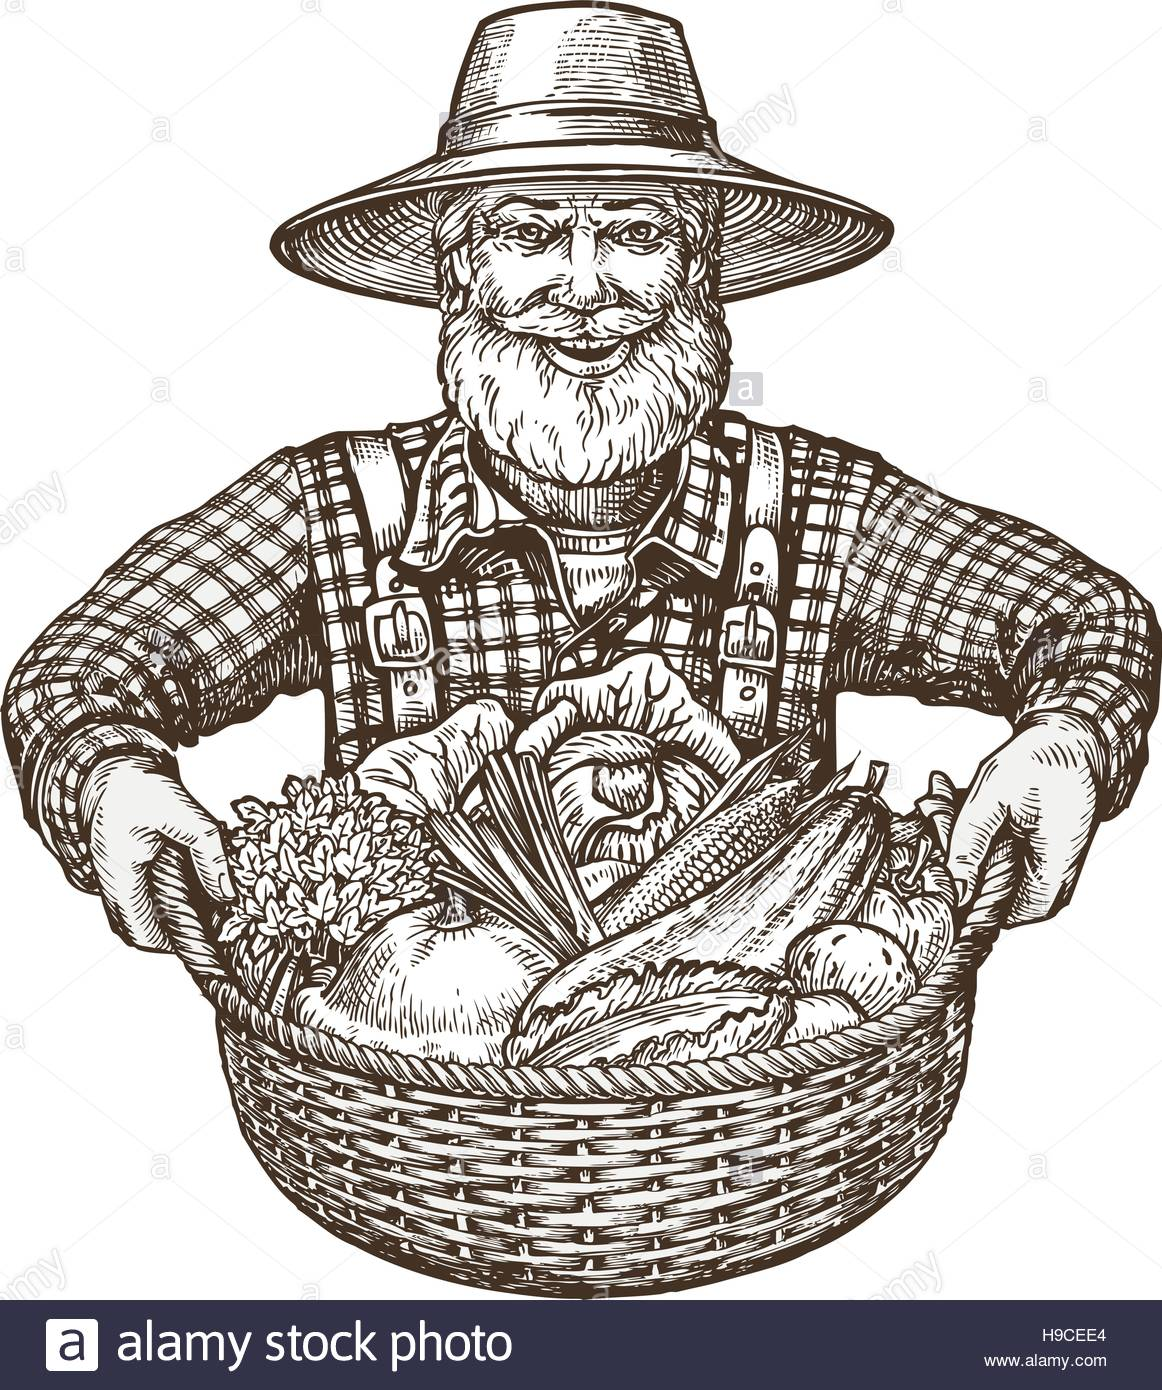 1162x1390 Vegetables. Farmer With Basket In Hands. Sketch Vector Stock